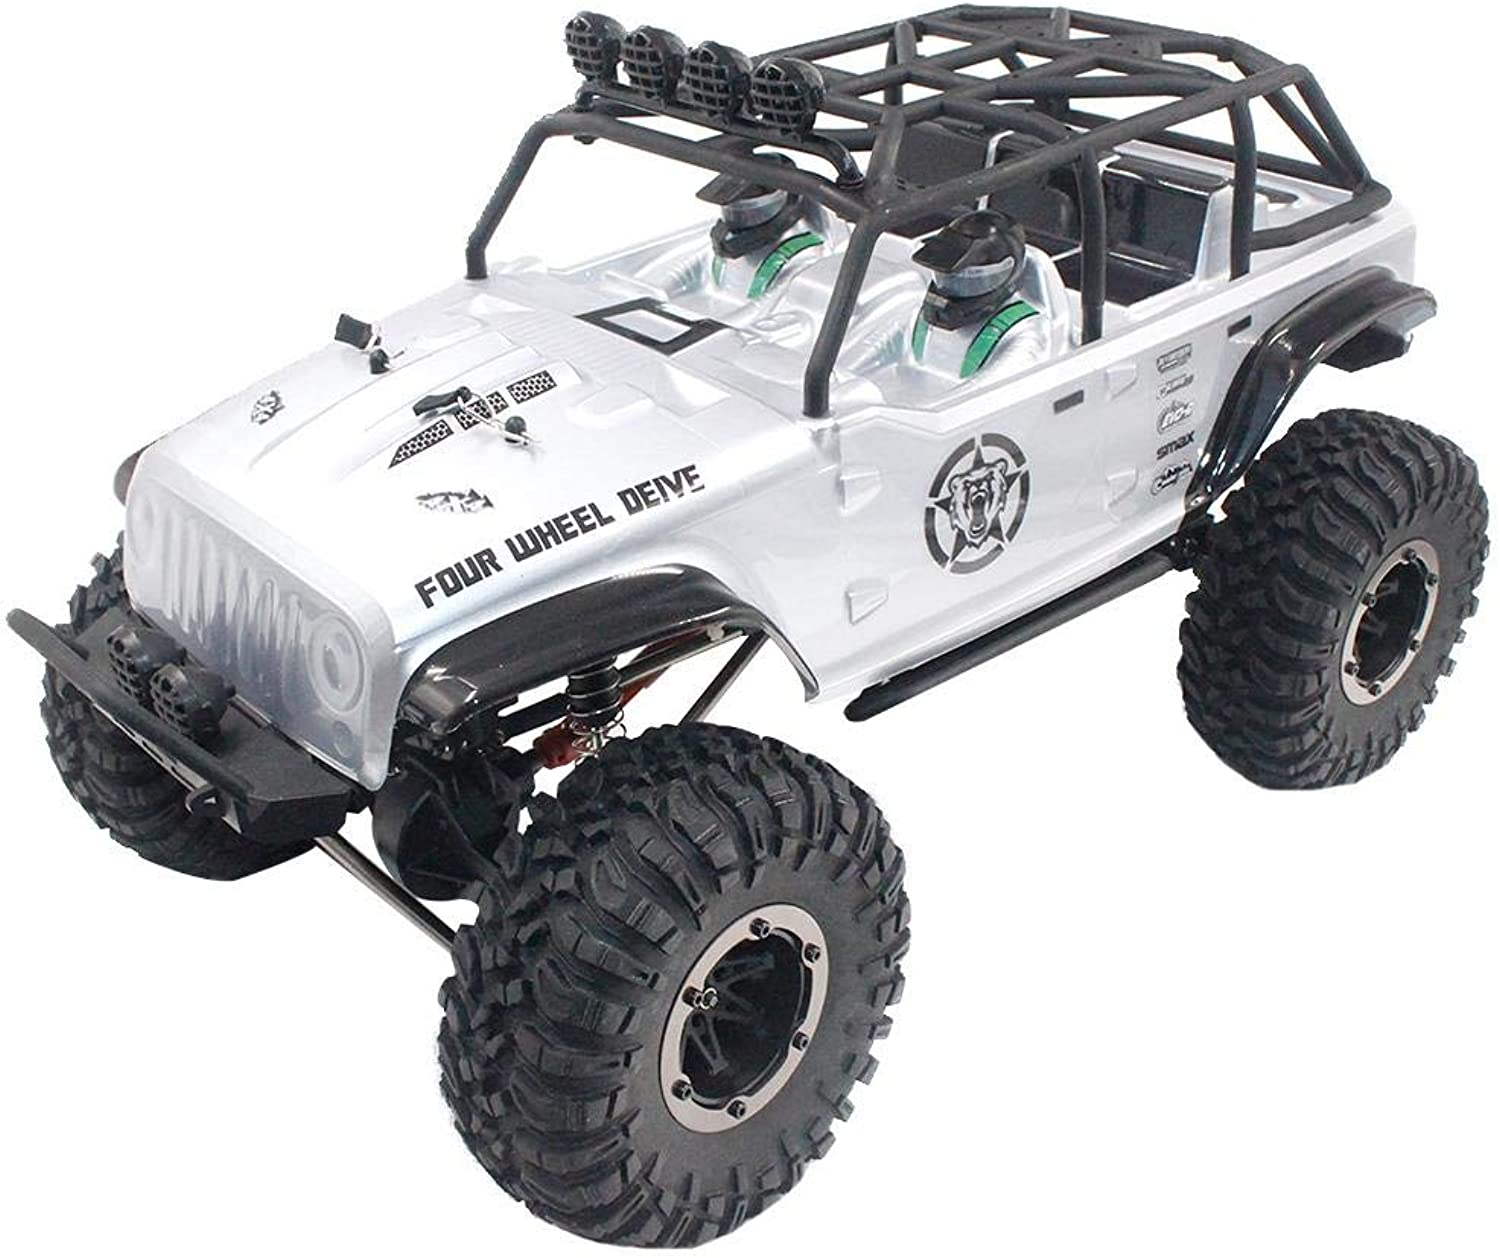 Motto.h Remo Hobby 1073-SJ 1 10 2.4G 4WD Brushed Rc Car,Big Wheel Off-road Remote Control Vehicle Rack Crawler Trail Rigs Truck RTR Toy For Kids Boys Adults.